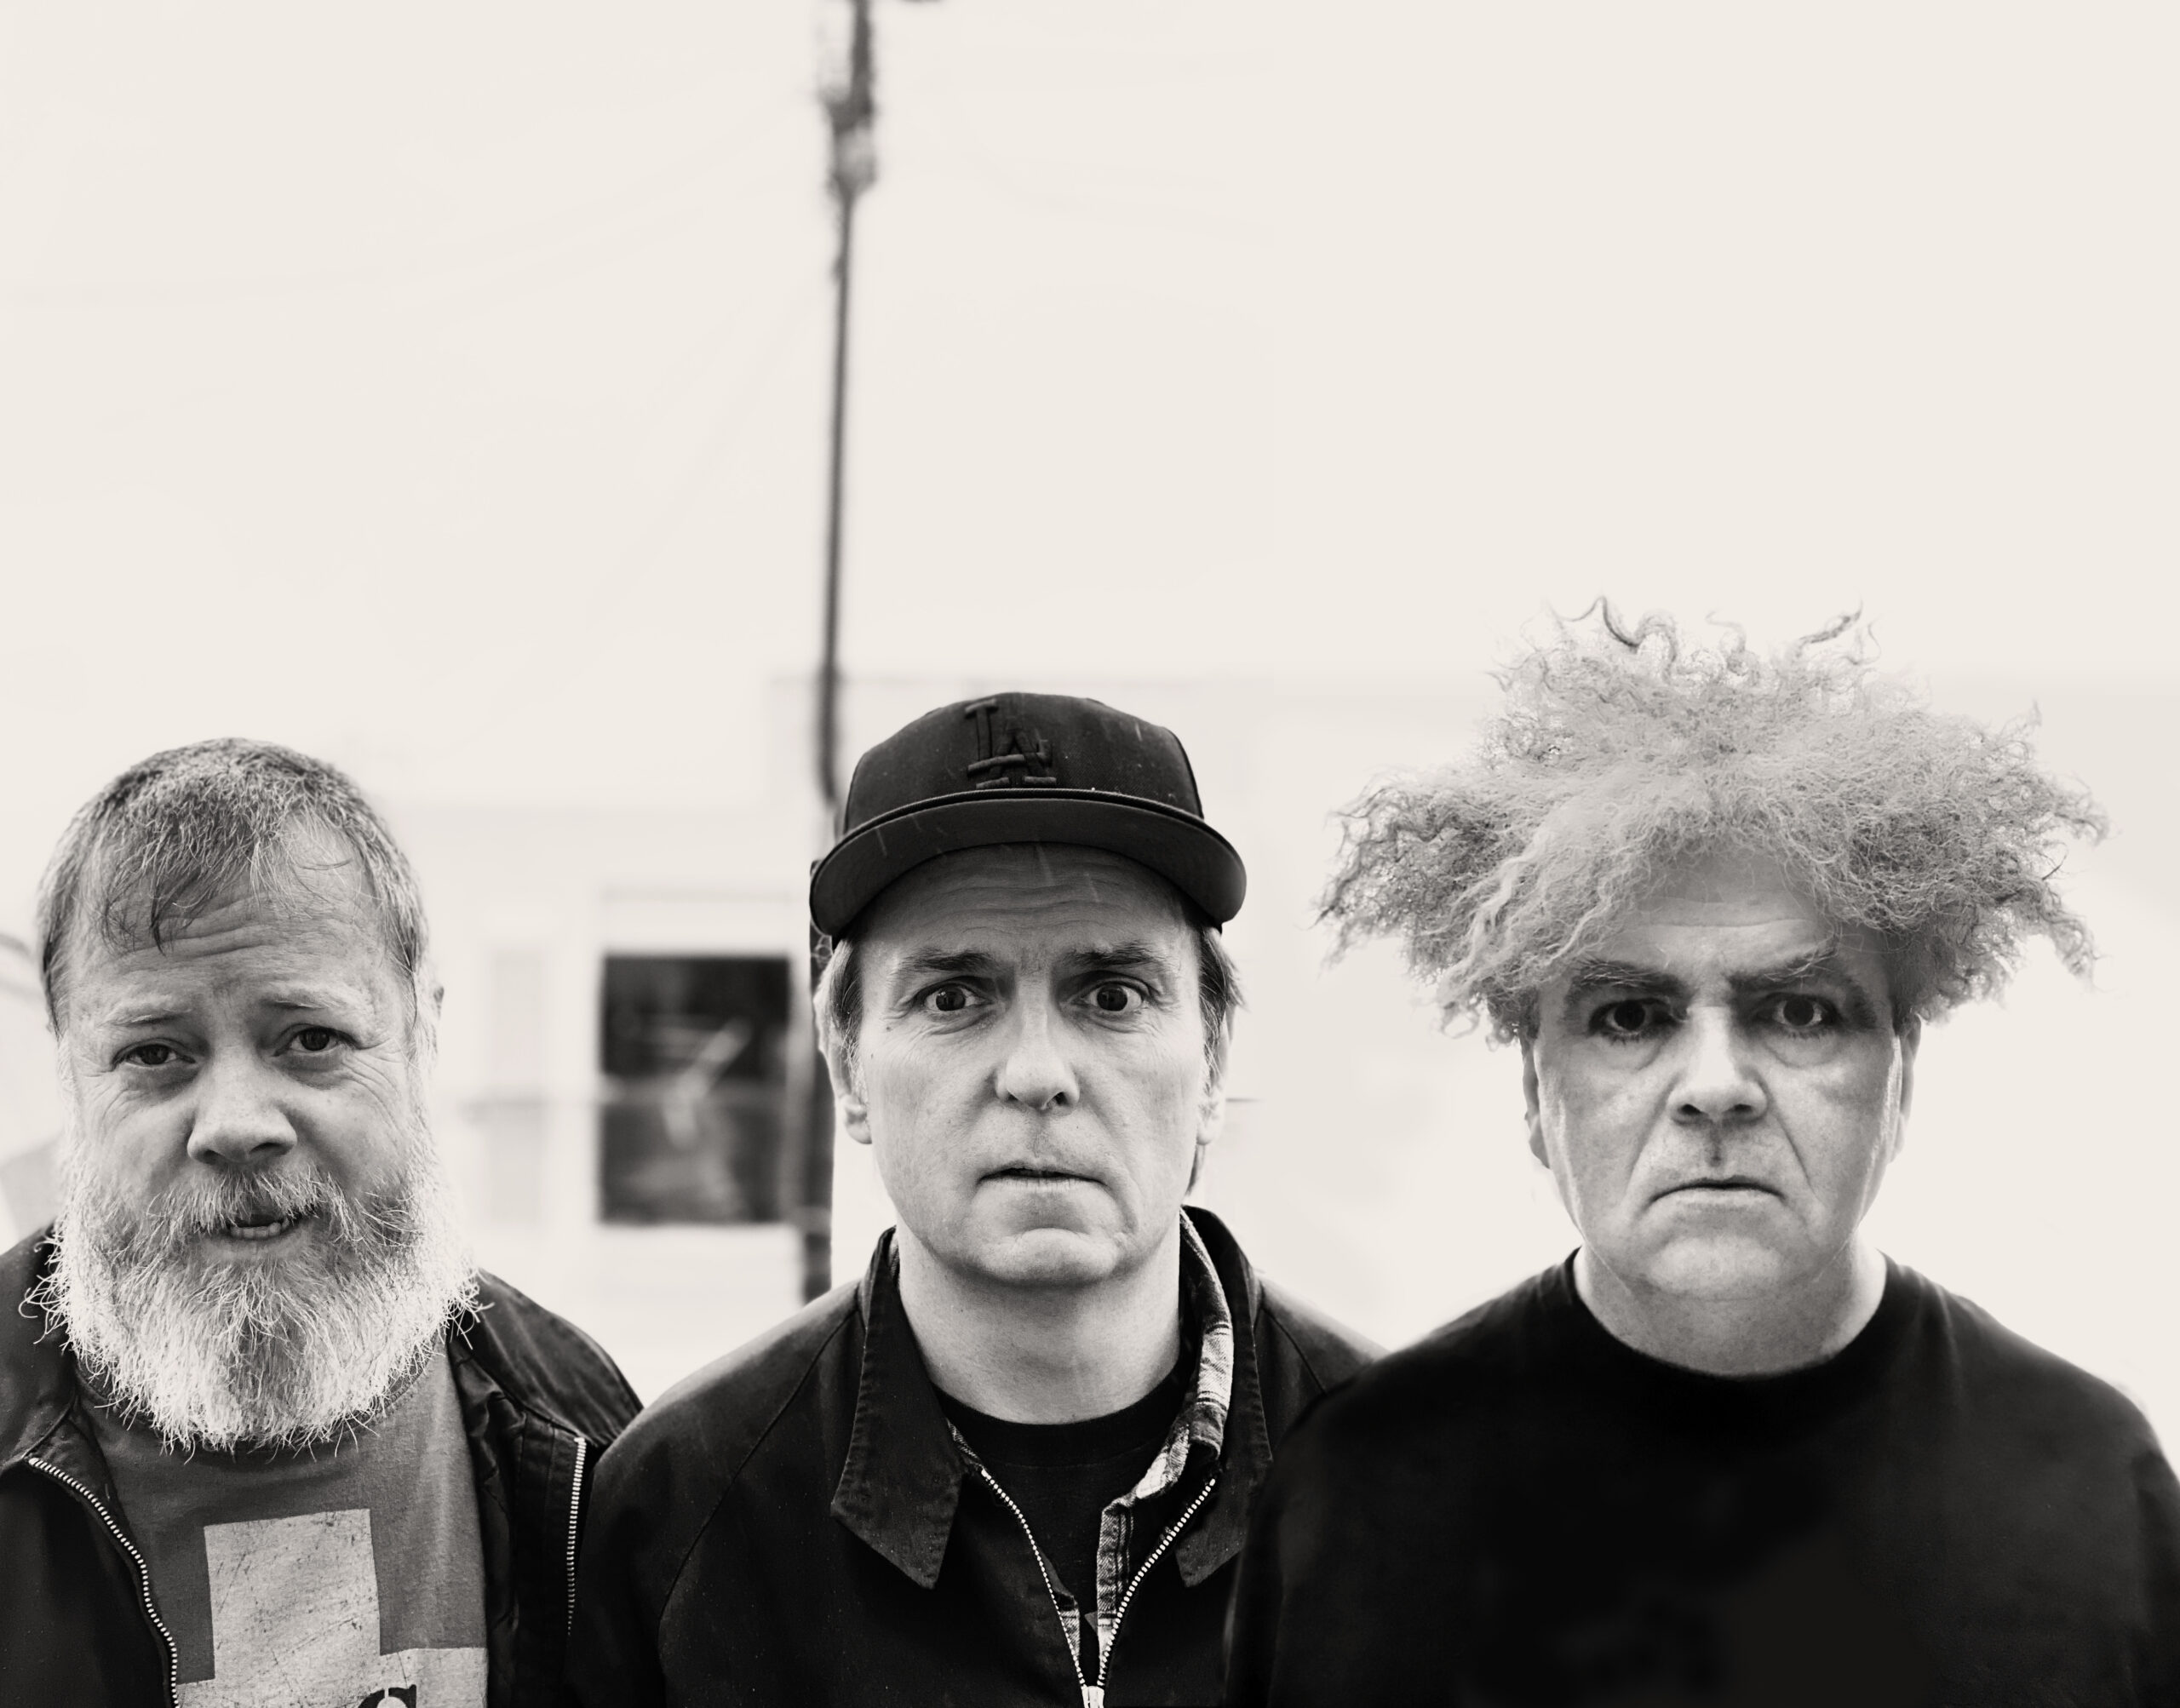 MELVINS NEW MELVINS 1983 ALBUM WORKING WITH GOD  + A PAIR OF LTD EDITION VINYL RE-ISSUES OUT FRIDAY 26 FEBRUARY